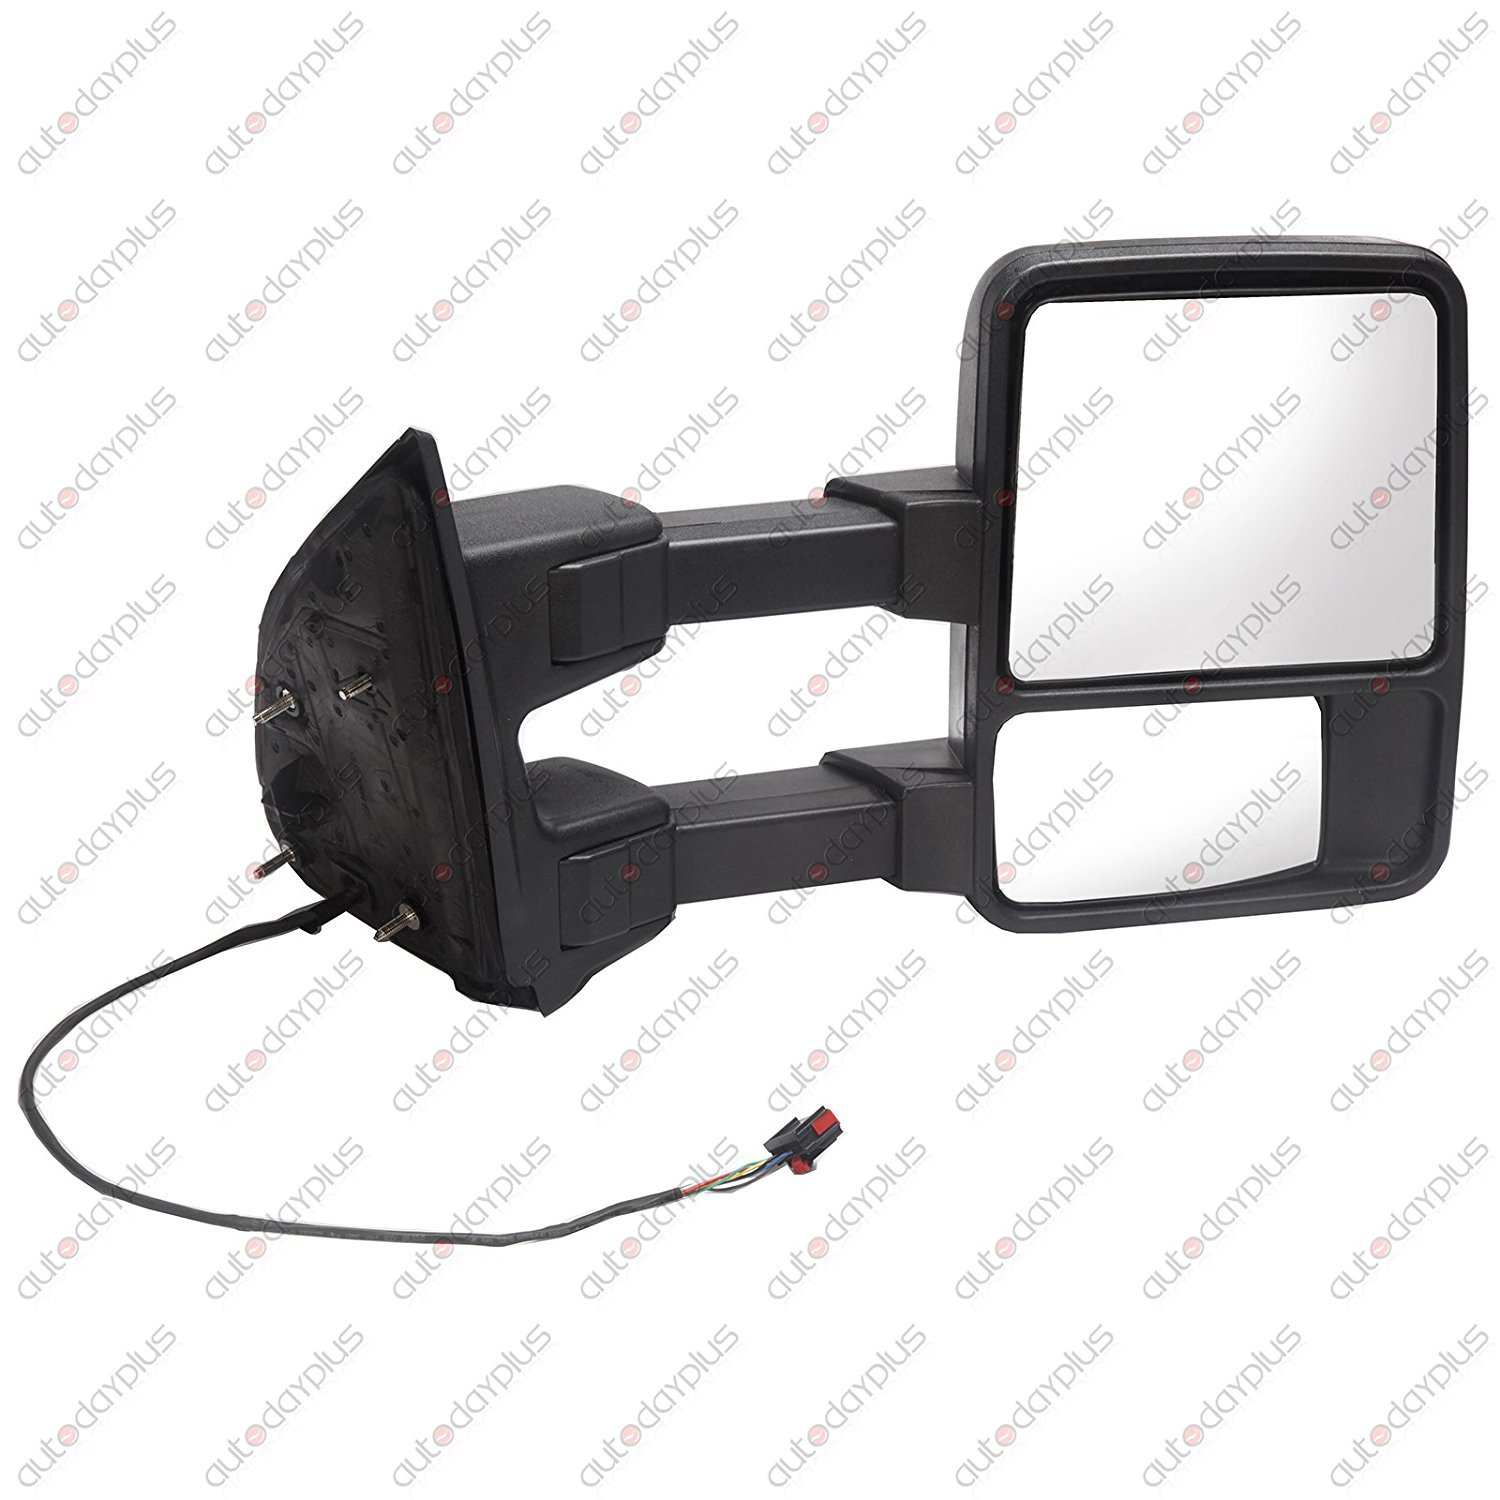 SCITOO Power Heated Passenger Side Mirror Smoke Clear Turn Signal Lights Right Towing Mirror 2008-2016 Ford F250 F350 F450 F550 Super Duty Scitoo Towing Mirrors